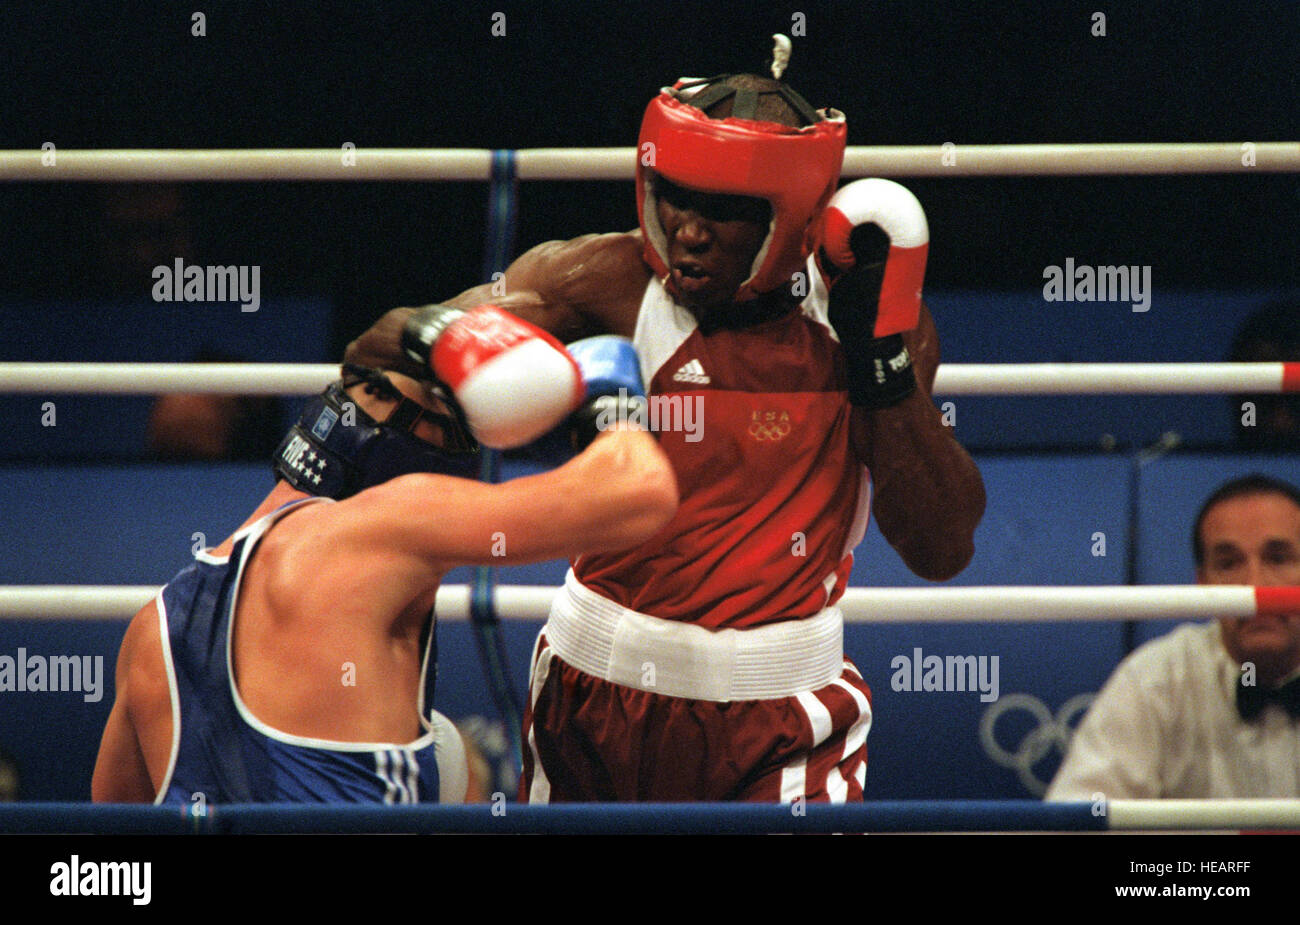 Straight on, medium shot of US Army Staff Sergeant Olanda Anderson (Red) as he tries to land a punch against Rudolf - Stock Image